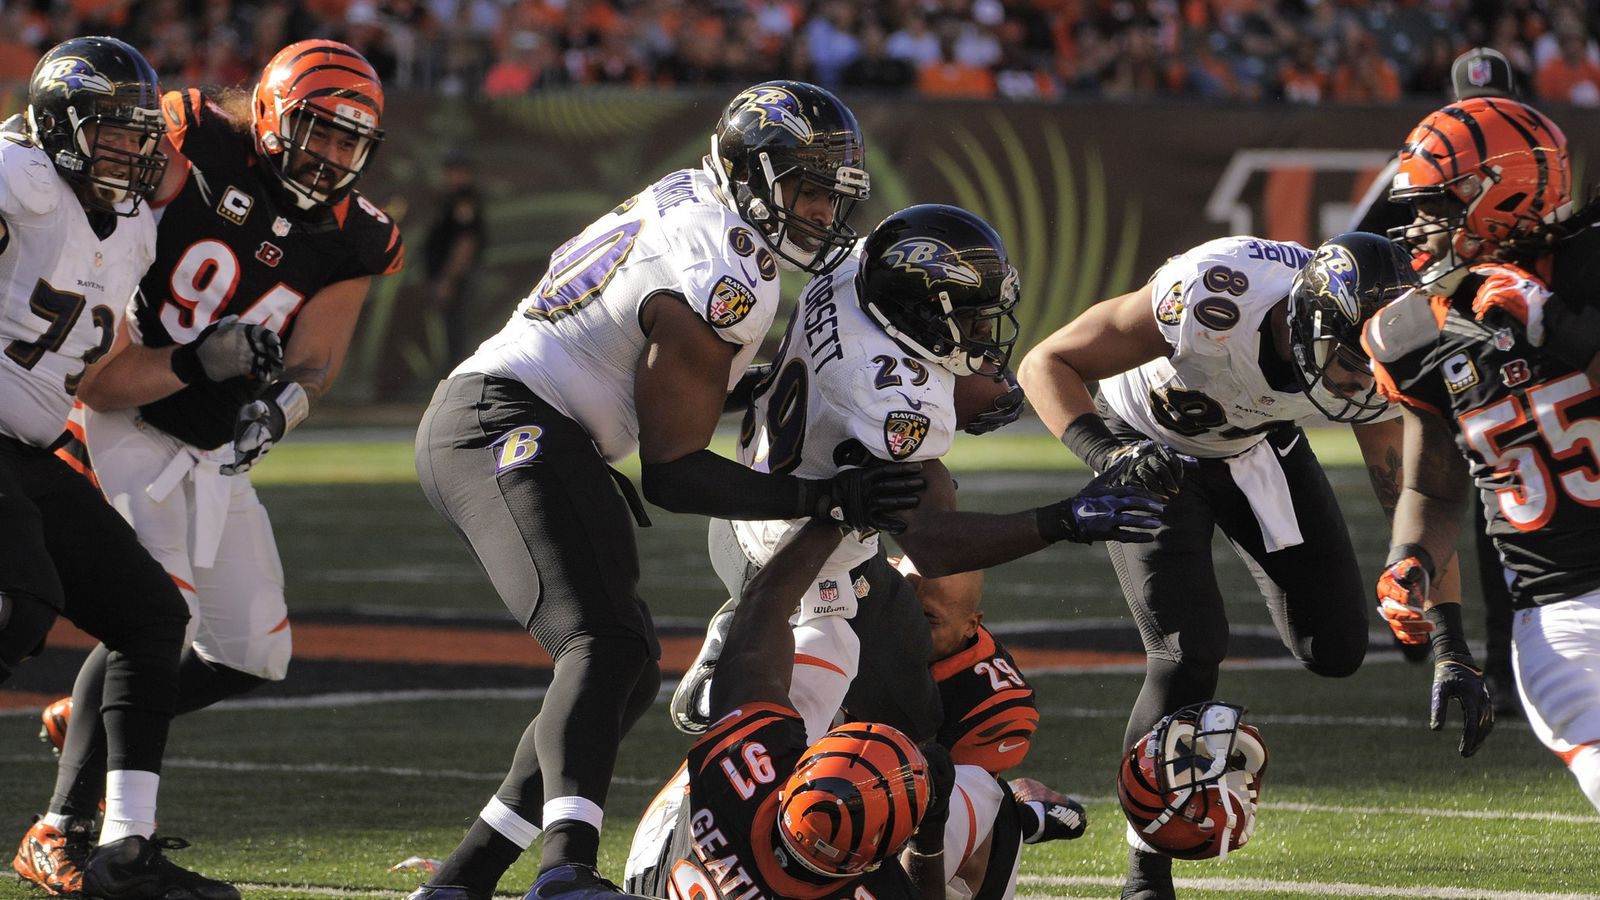 Bal_ravens_notes_eugene_monroe_emerges_unscathed_in_first_game_back_from_knee_injury_20141027.0